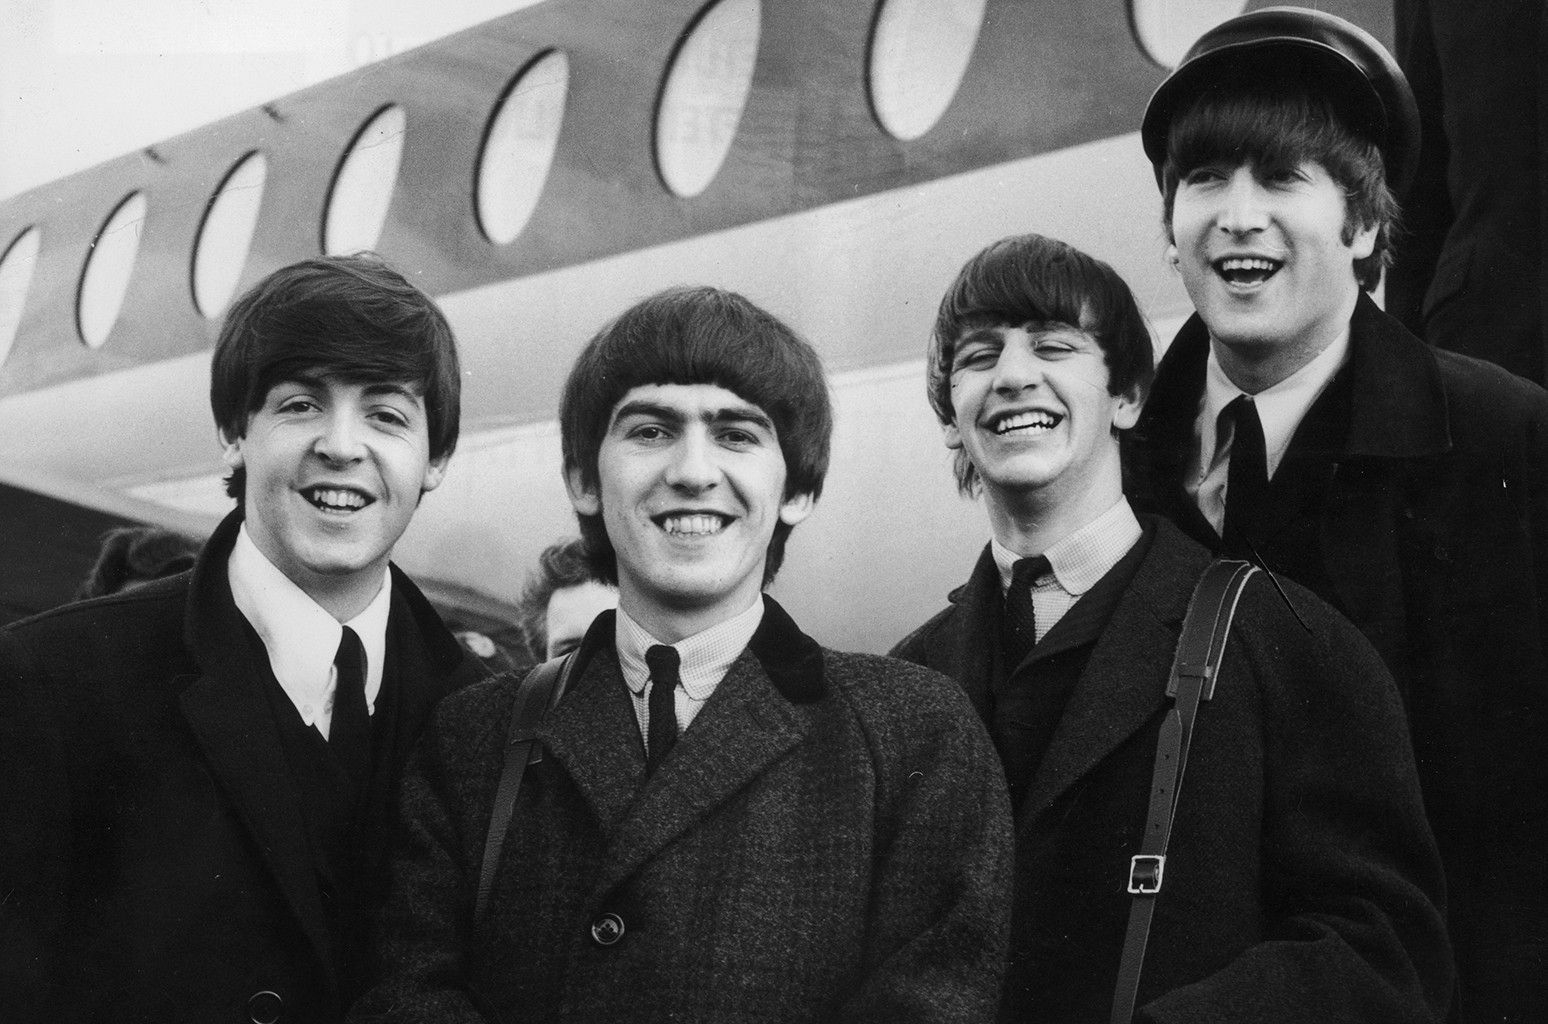 The Beatles photographed in 1964.